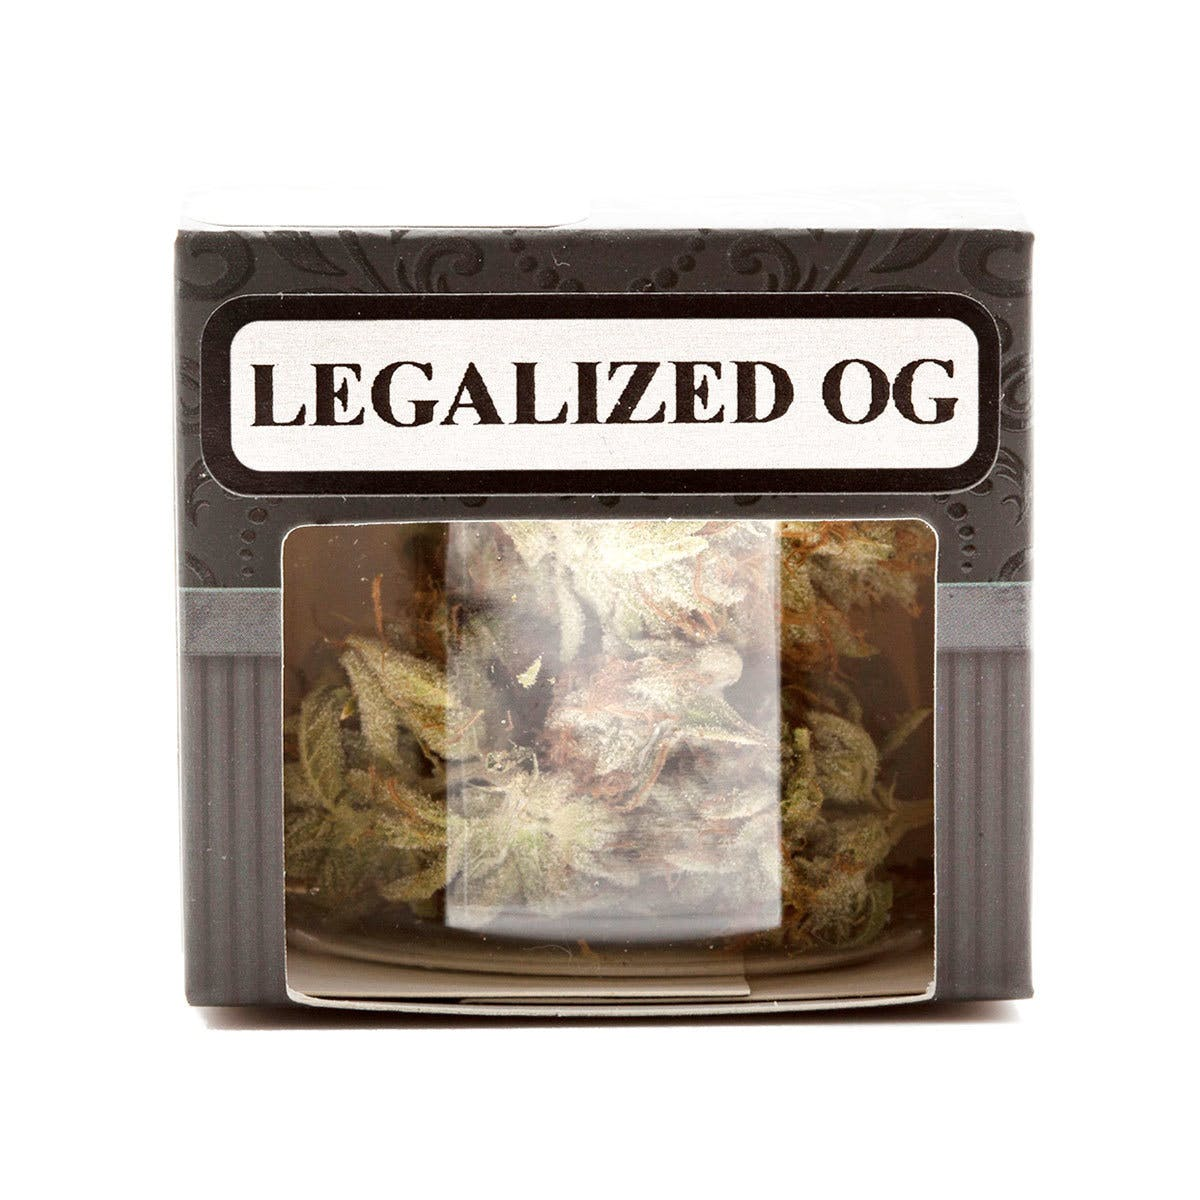 marijuana-dispensaries-greenway-marijuana-in-port-orchard-legalized-og